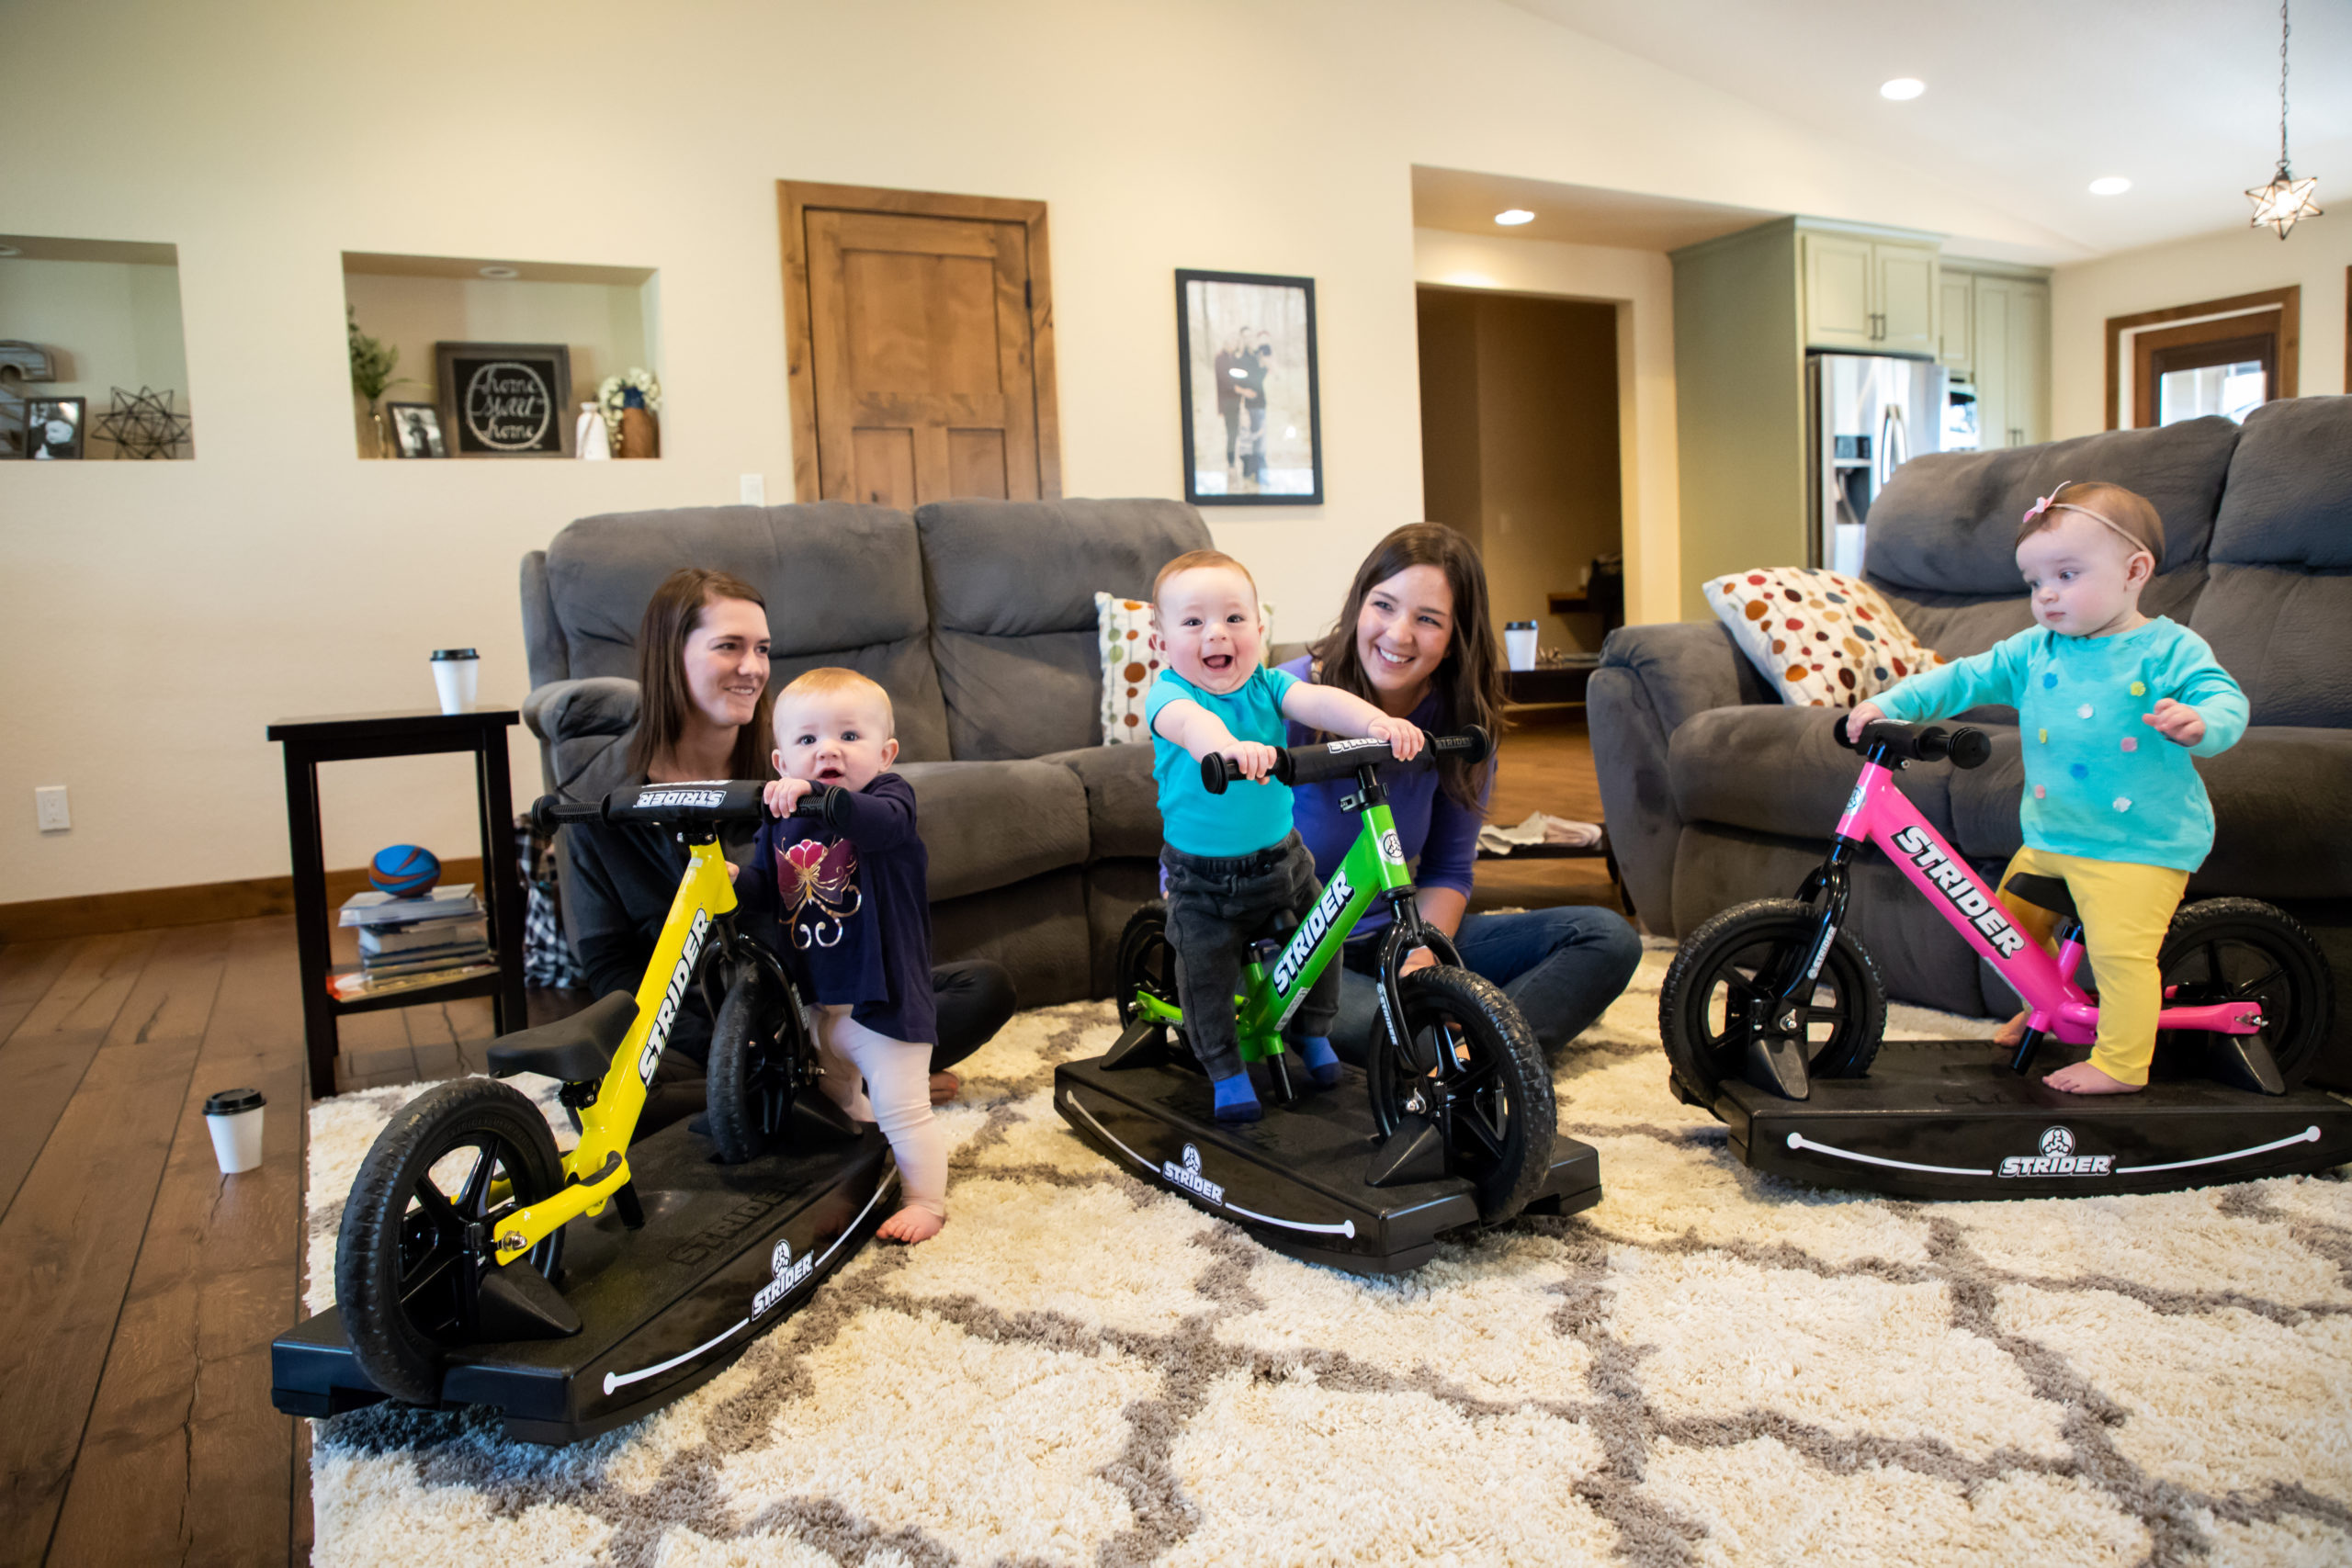 Three young babies playing on 2-in-1 Rocking Bikes with their moms watching and smiling